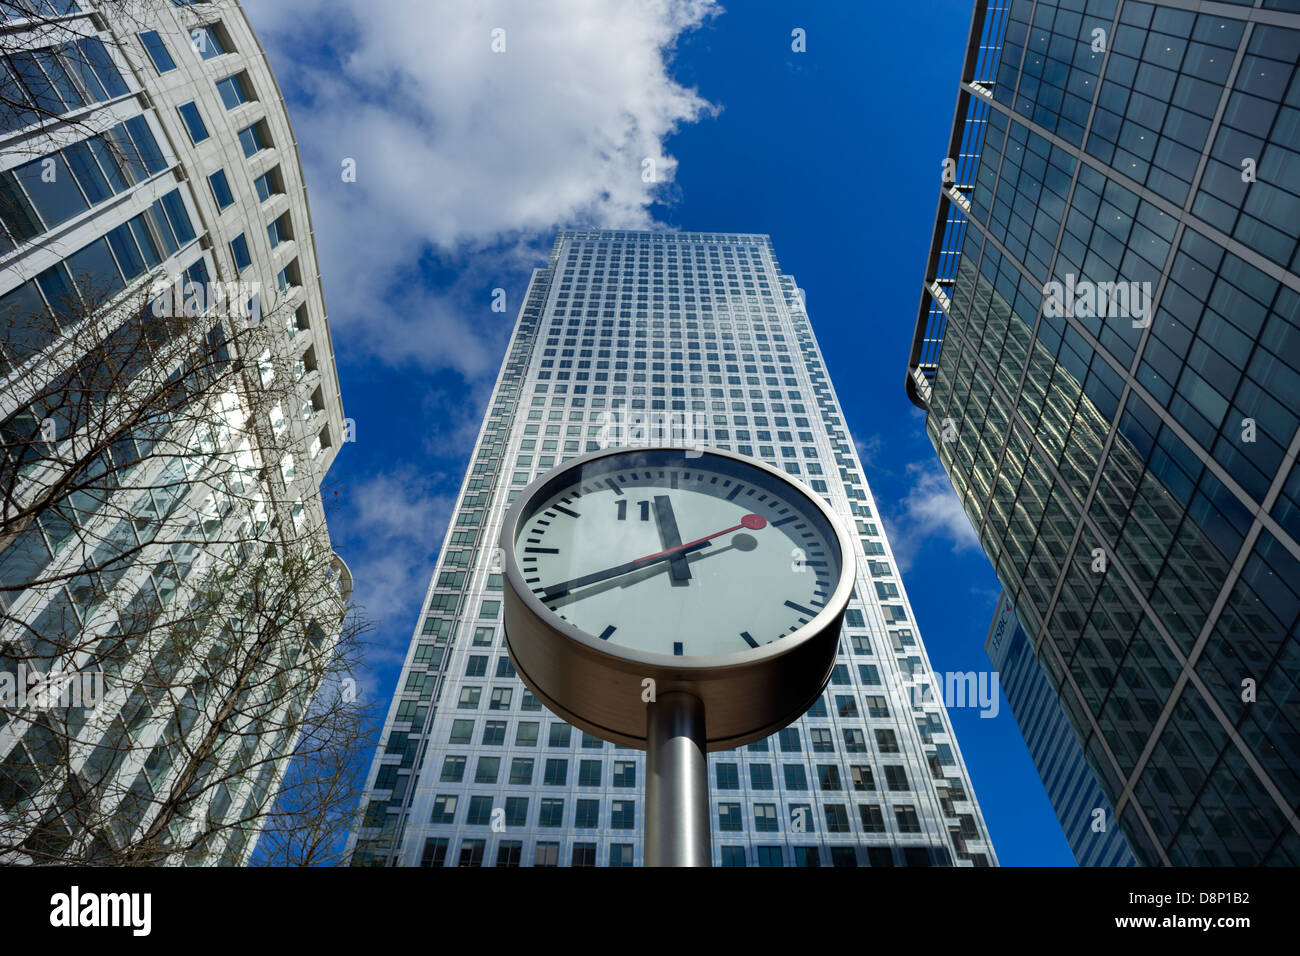 Clock at One Canada Square (second tallest building in UK), Canary Wharf, Tower Hamlets, London, England - Stock Image